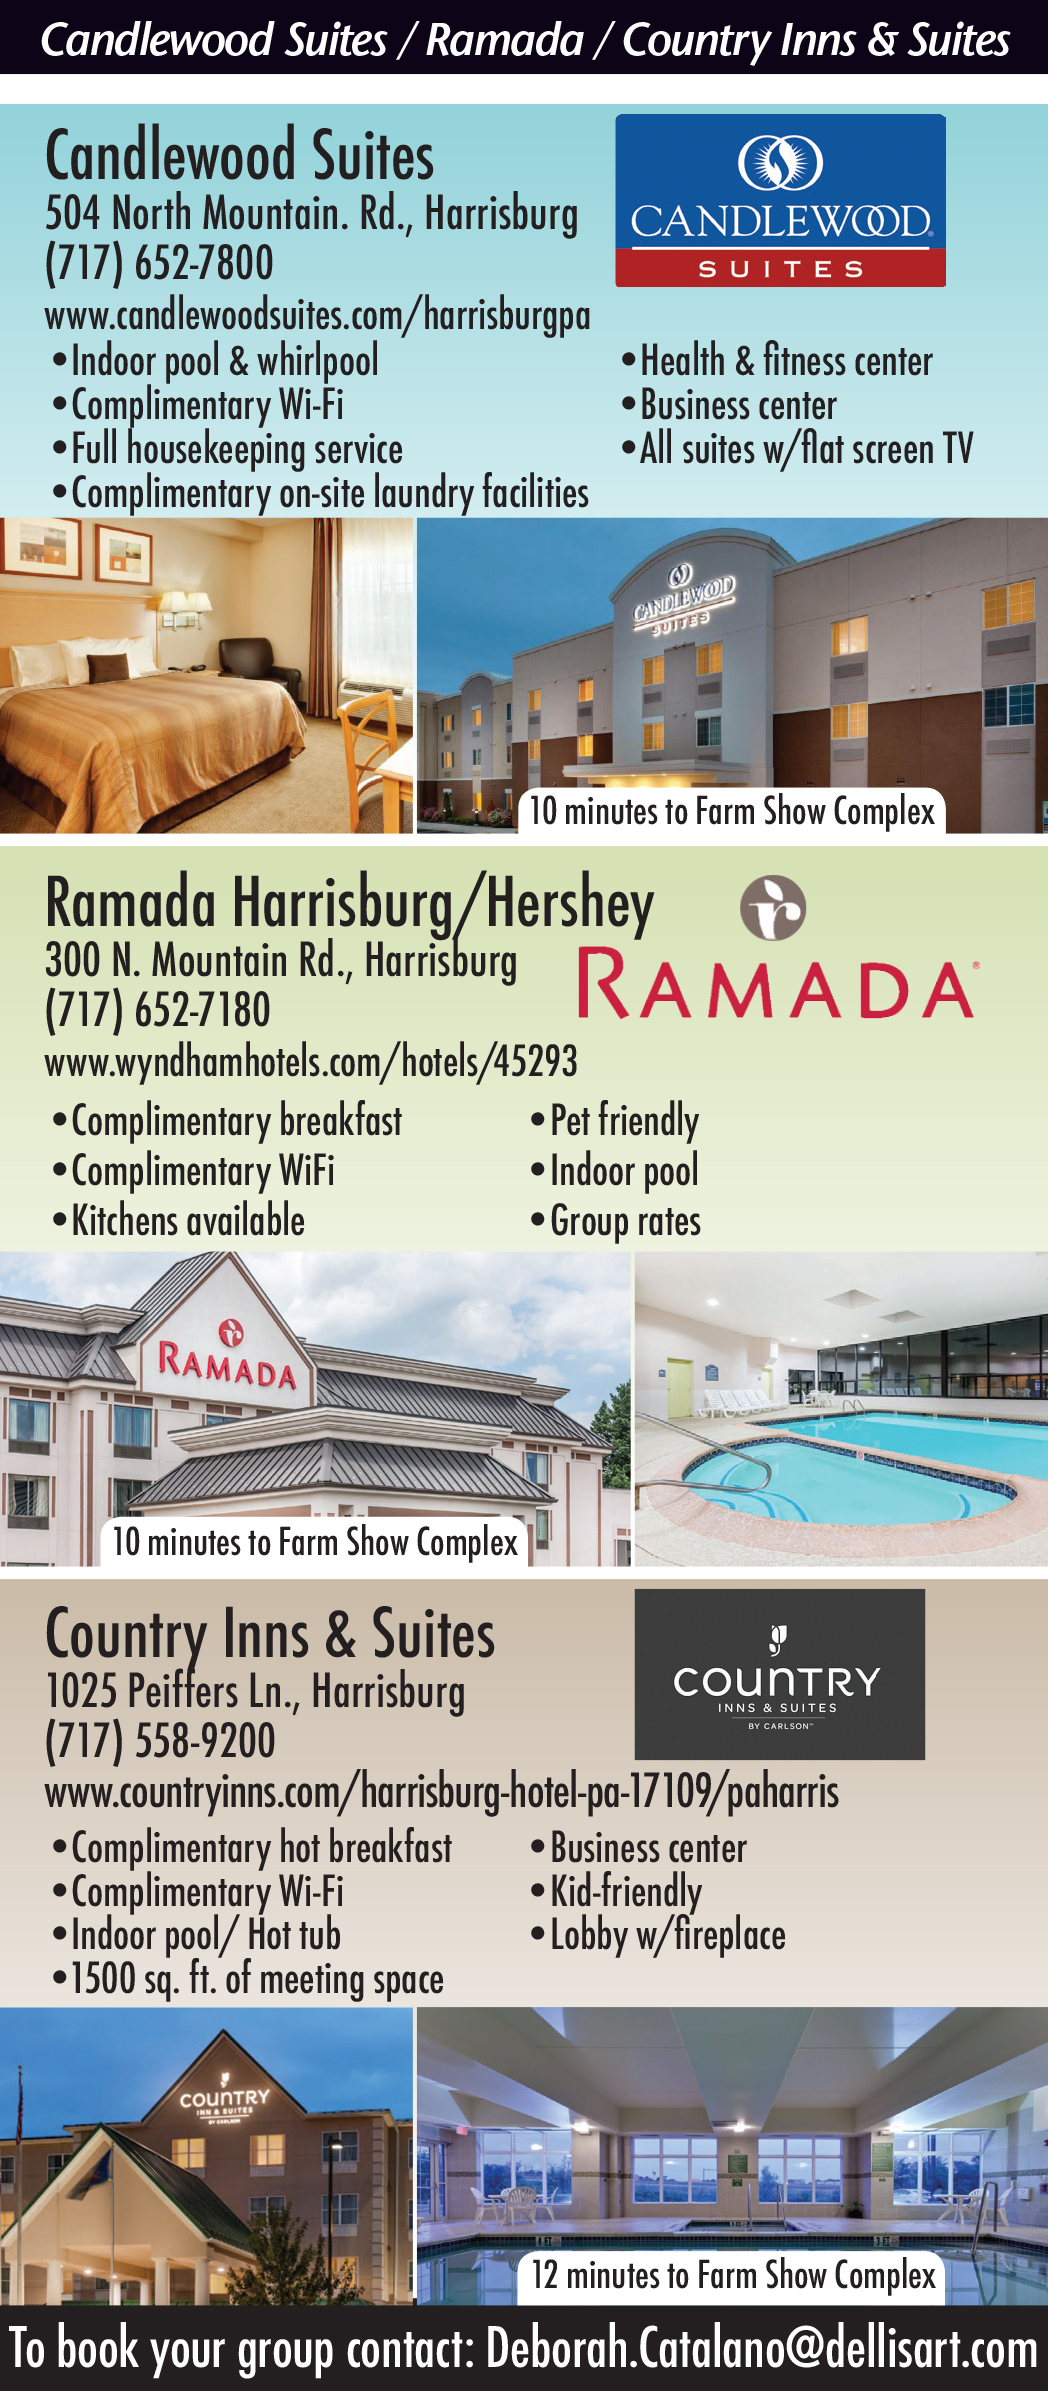 Candlewood Suites, Ramada Inn and Country Inn